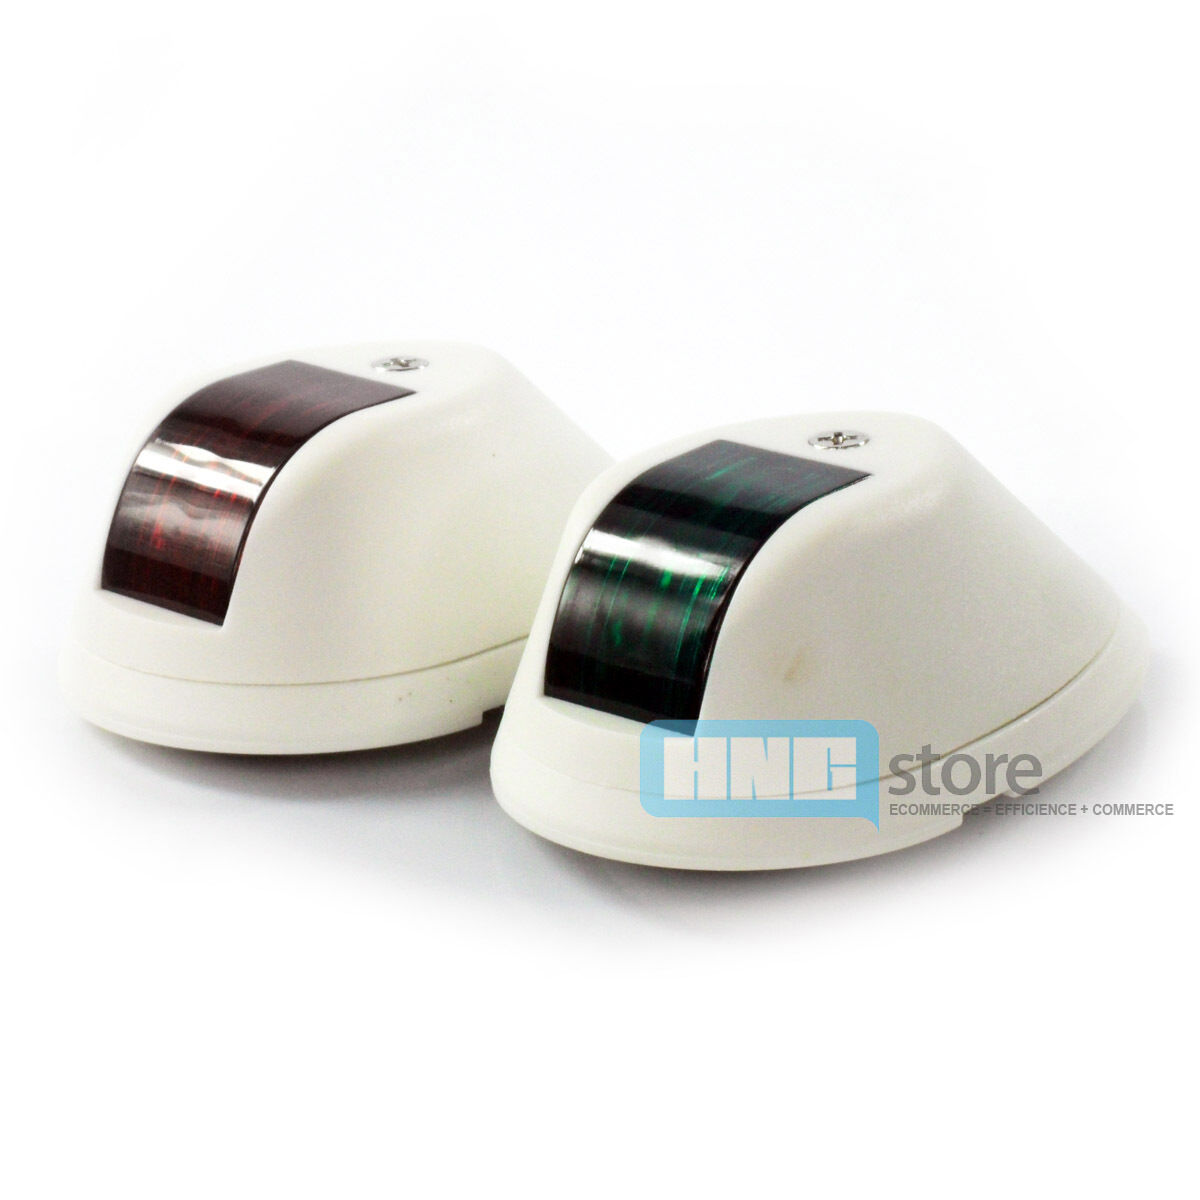 Pair of ABS Plastic Side Boat Navigation Lights Marine Boat Part Accesory New